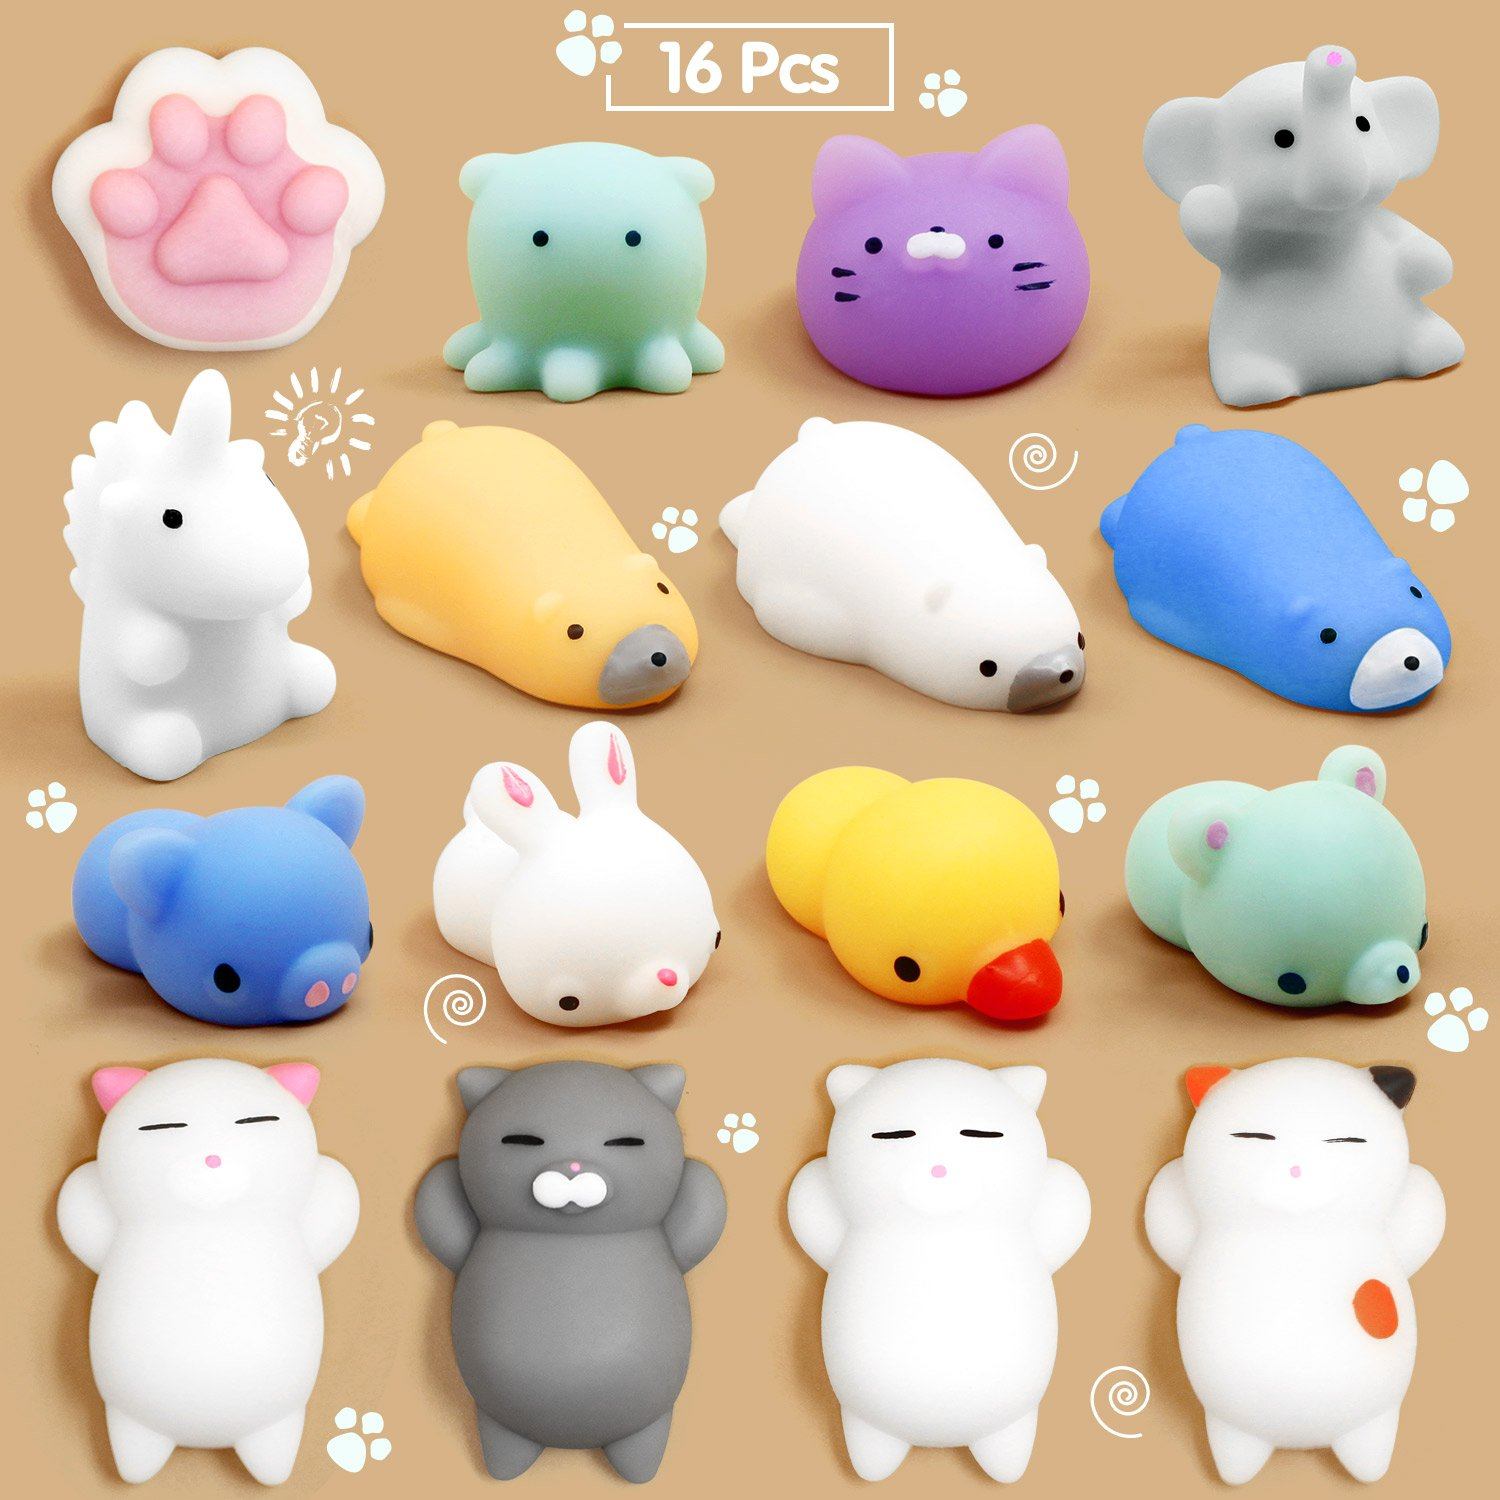 Mochi Squishy, Calans 16 Pcs Mochi Animals Stress Toys Mochi Squishy Toy Soft Squishy Stress Relief Animal Toys Mochi Squeeze Toys Mini Cat Squishies, Random Color